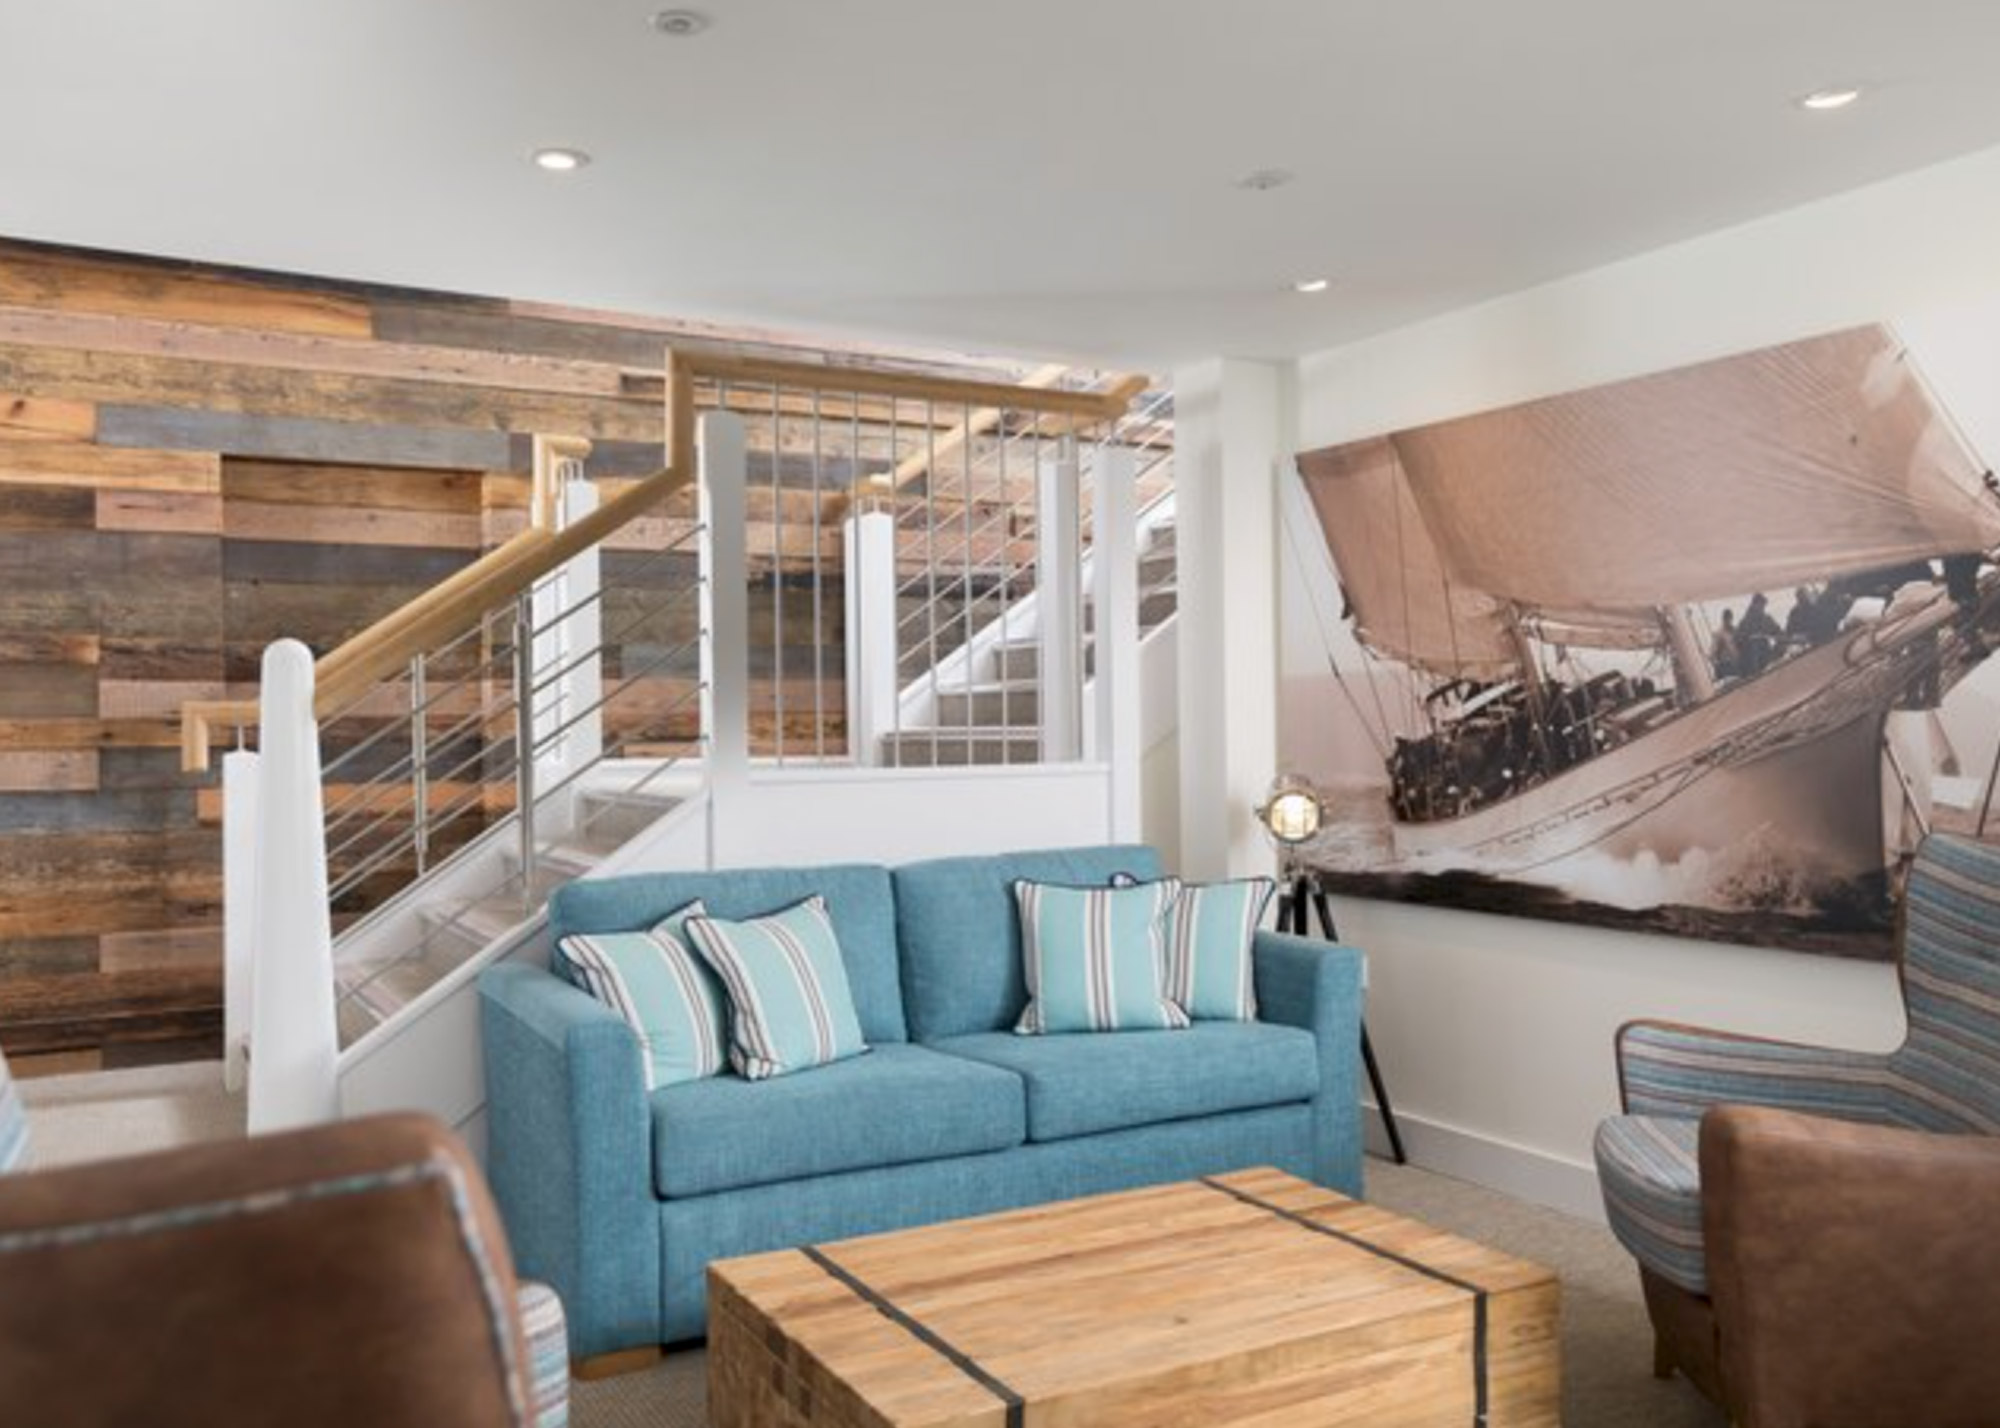 Turquoise sofa in living room with large reclaimed create coffee box